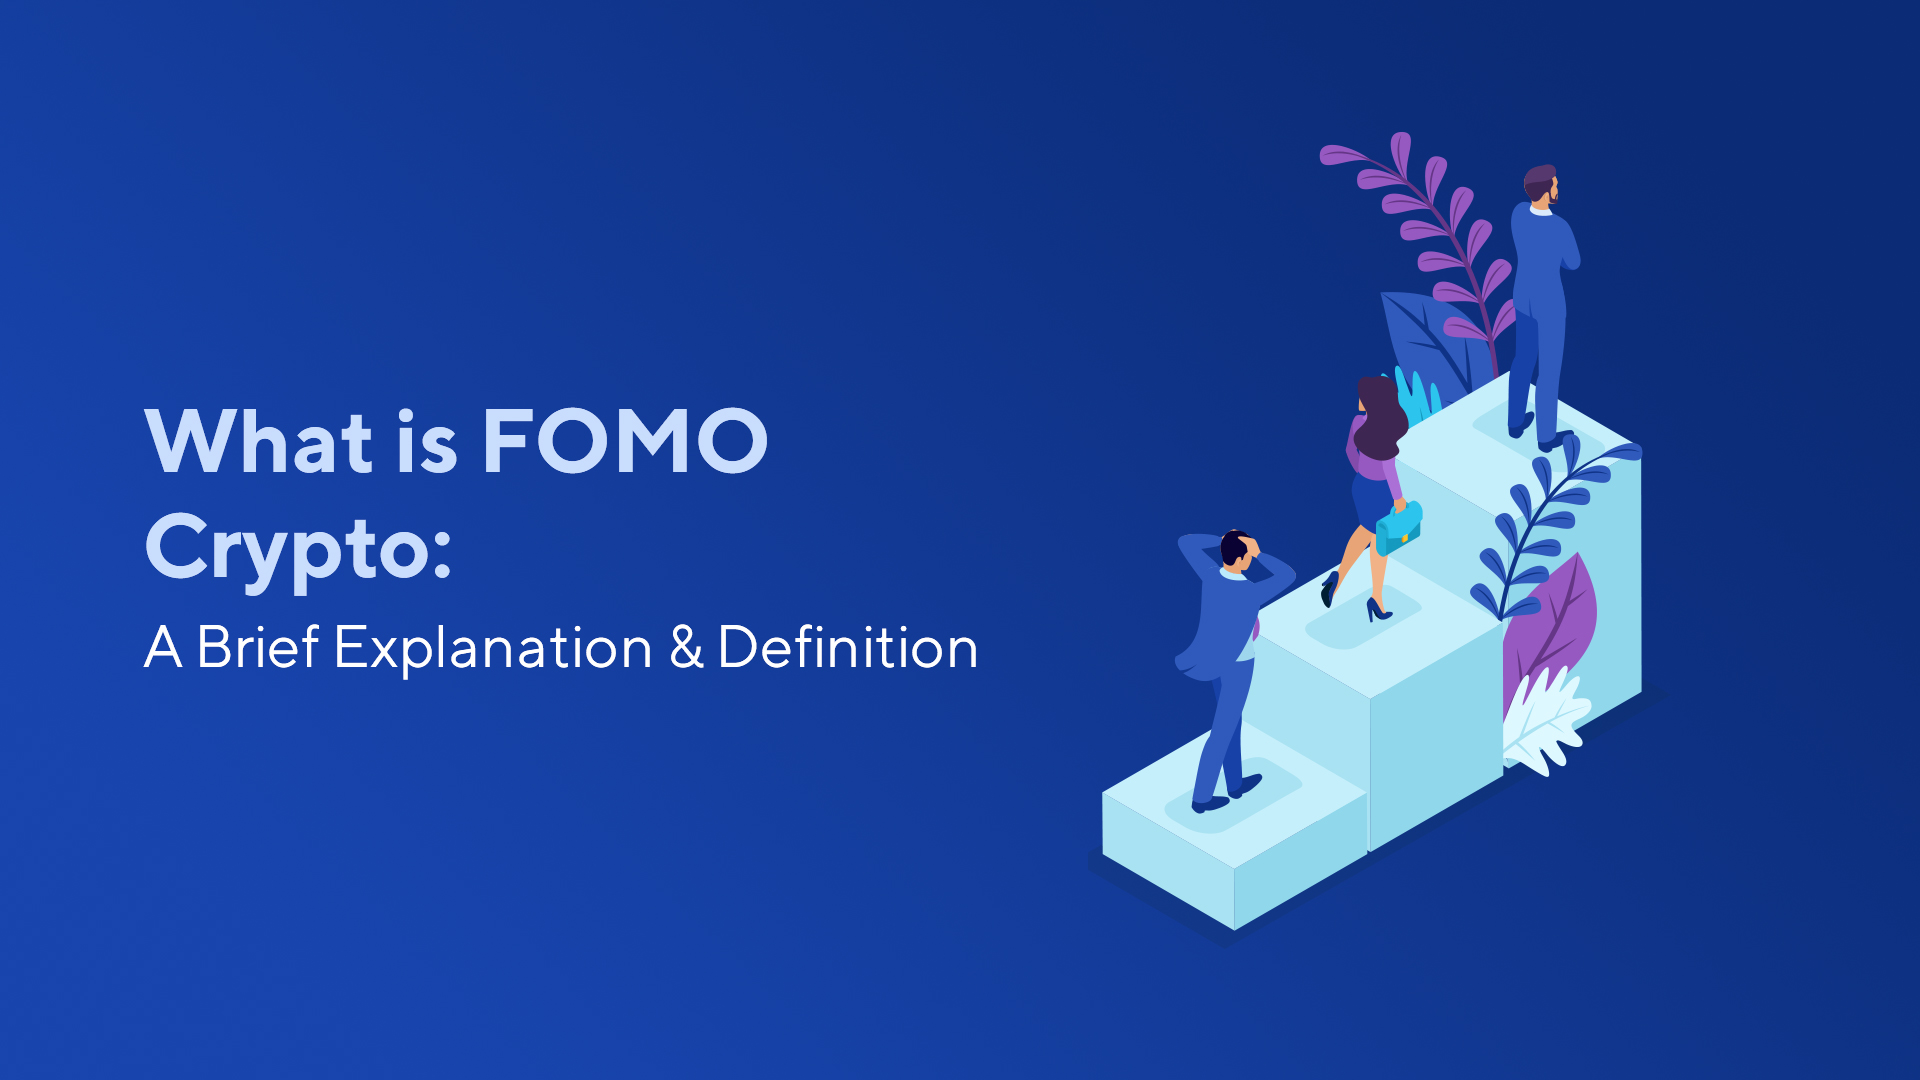 What is FOMO Crypto: A Brief Explanation & Definition